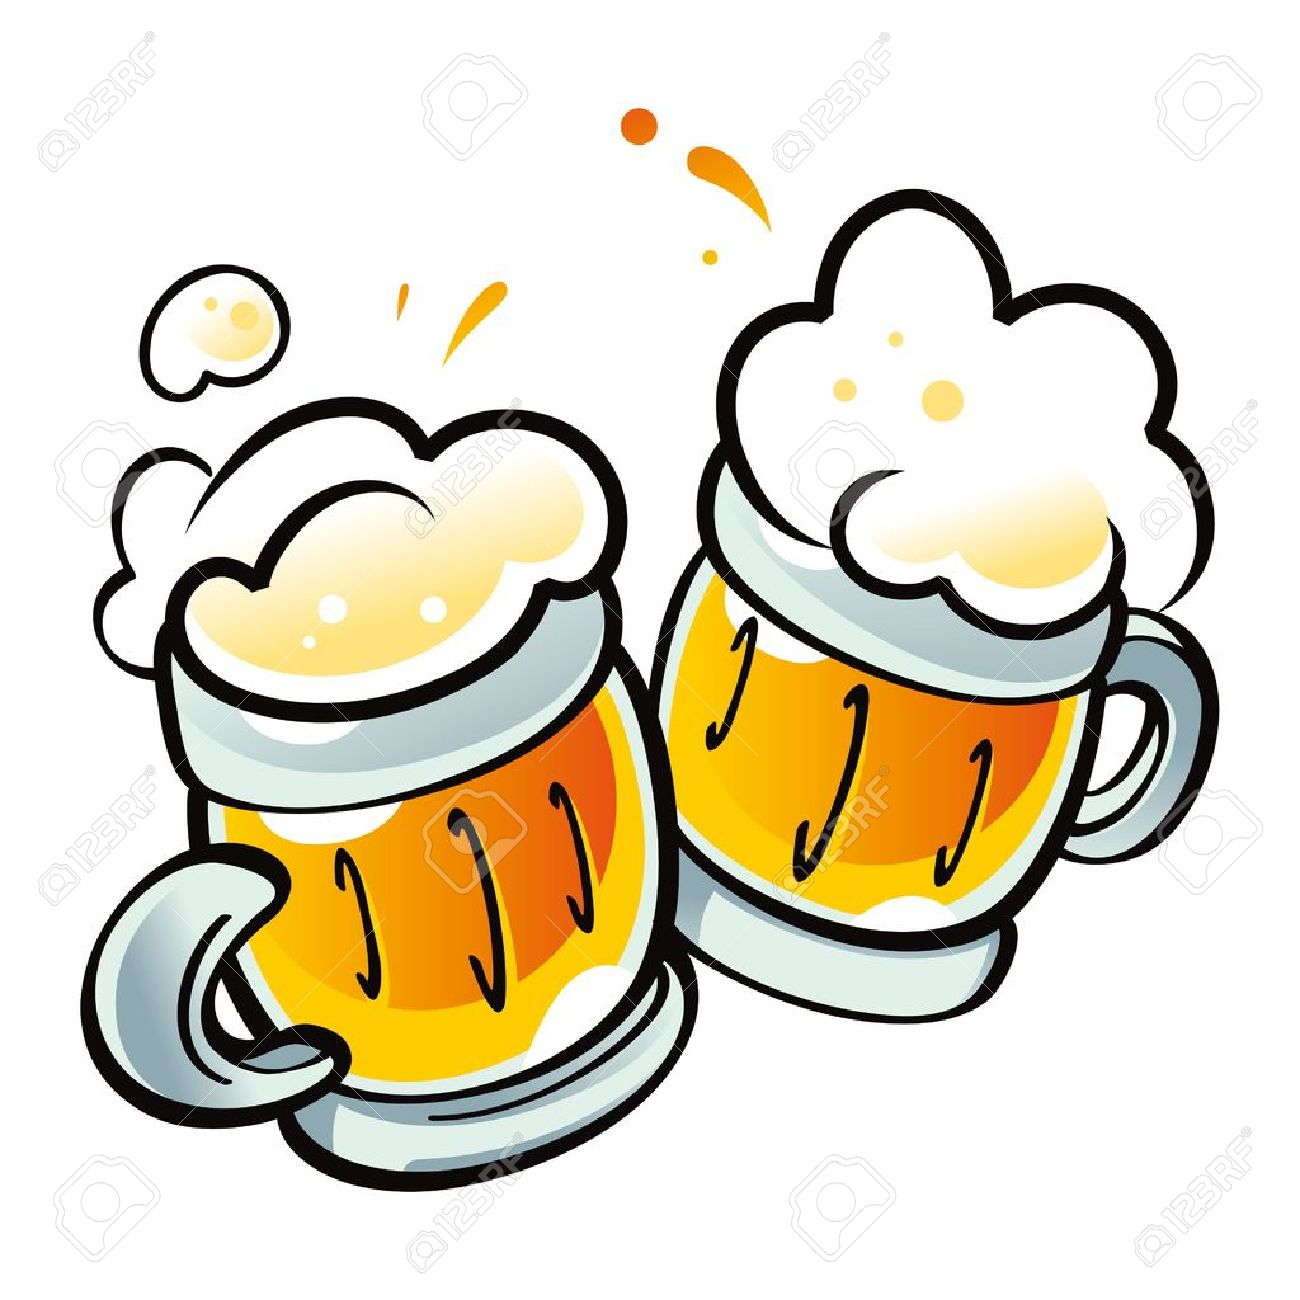 1300x1300 Beer Cheer Clipart, Explore Pictures